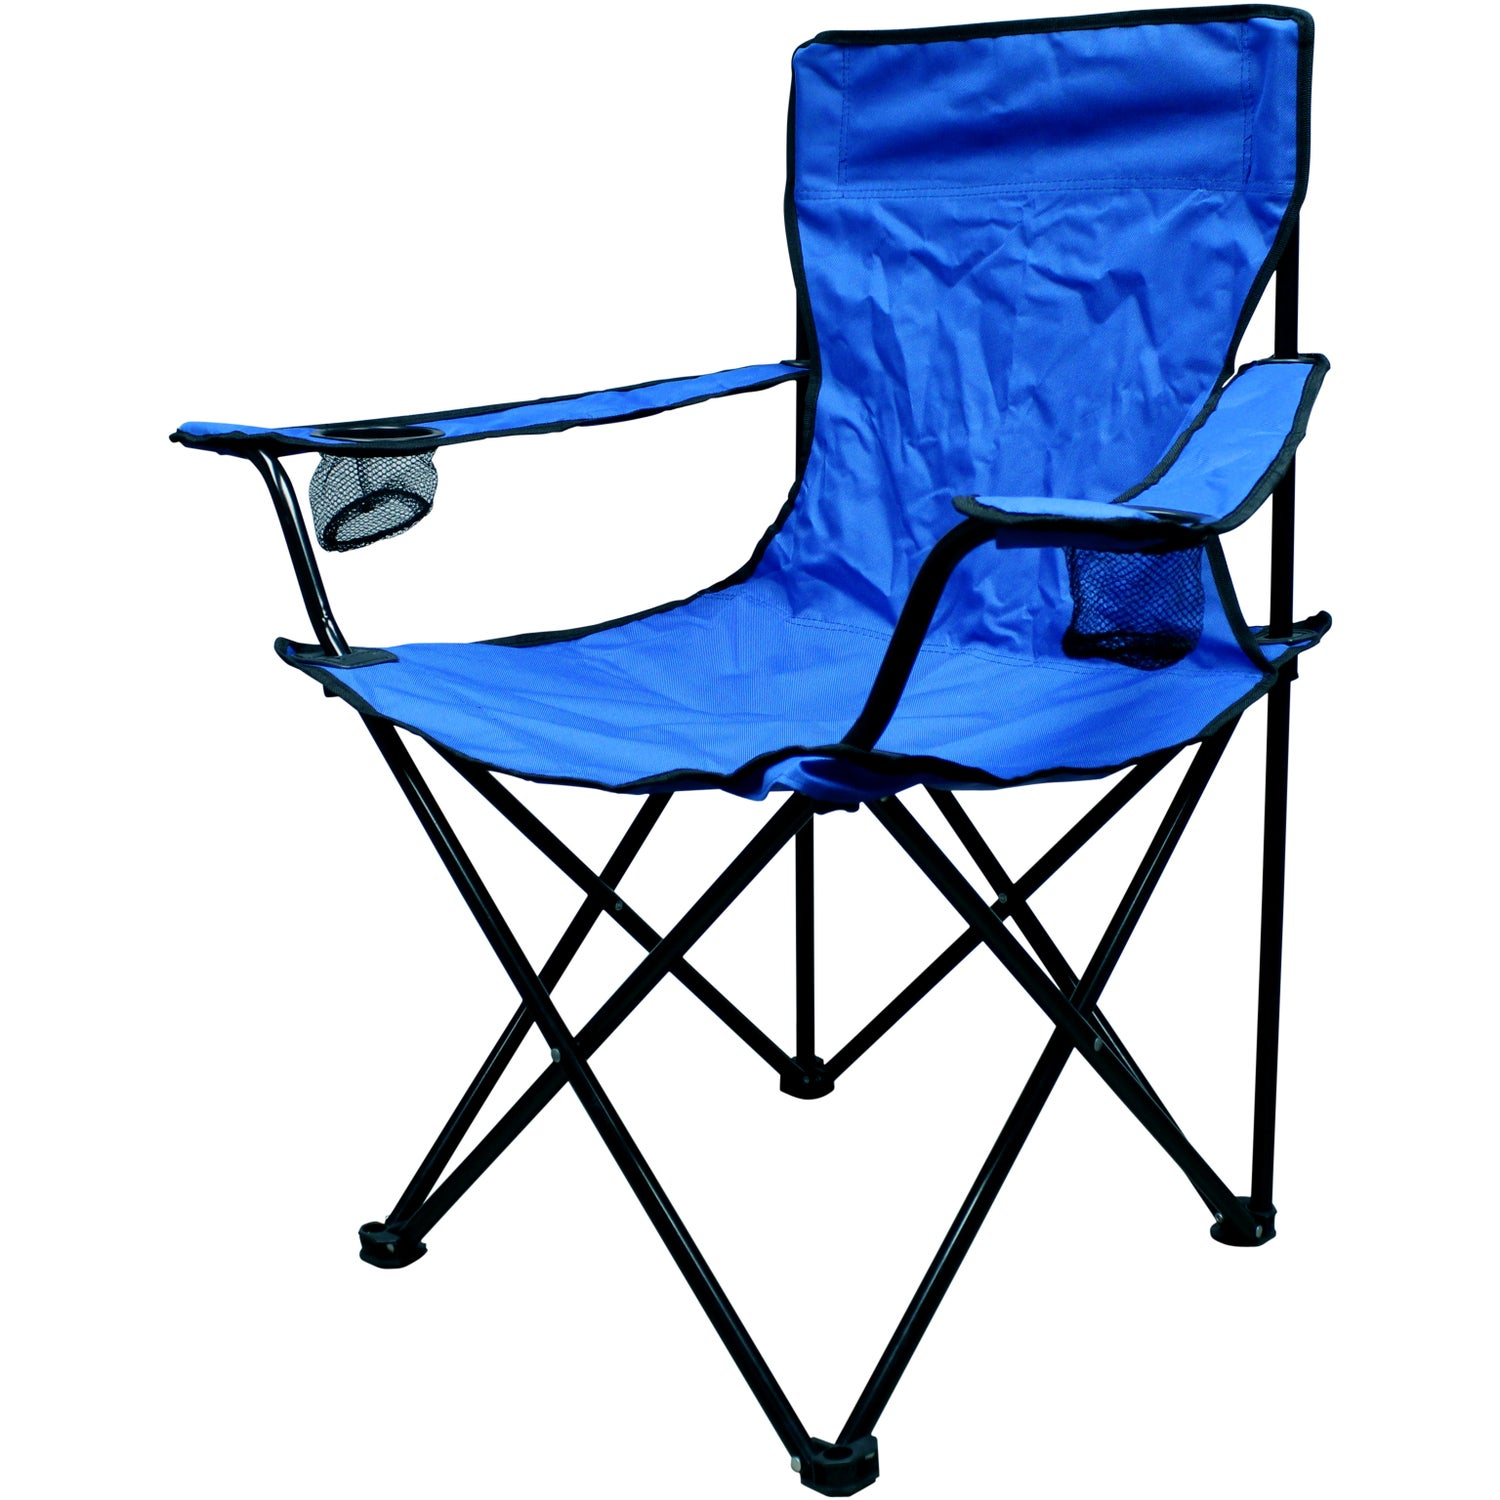 Folding Chair with Carrying Bag Printed with Your Logo